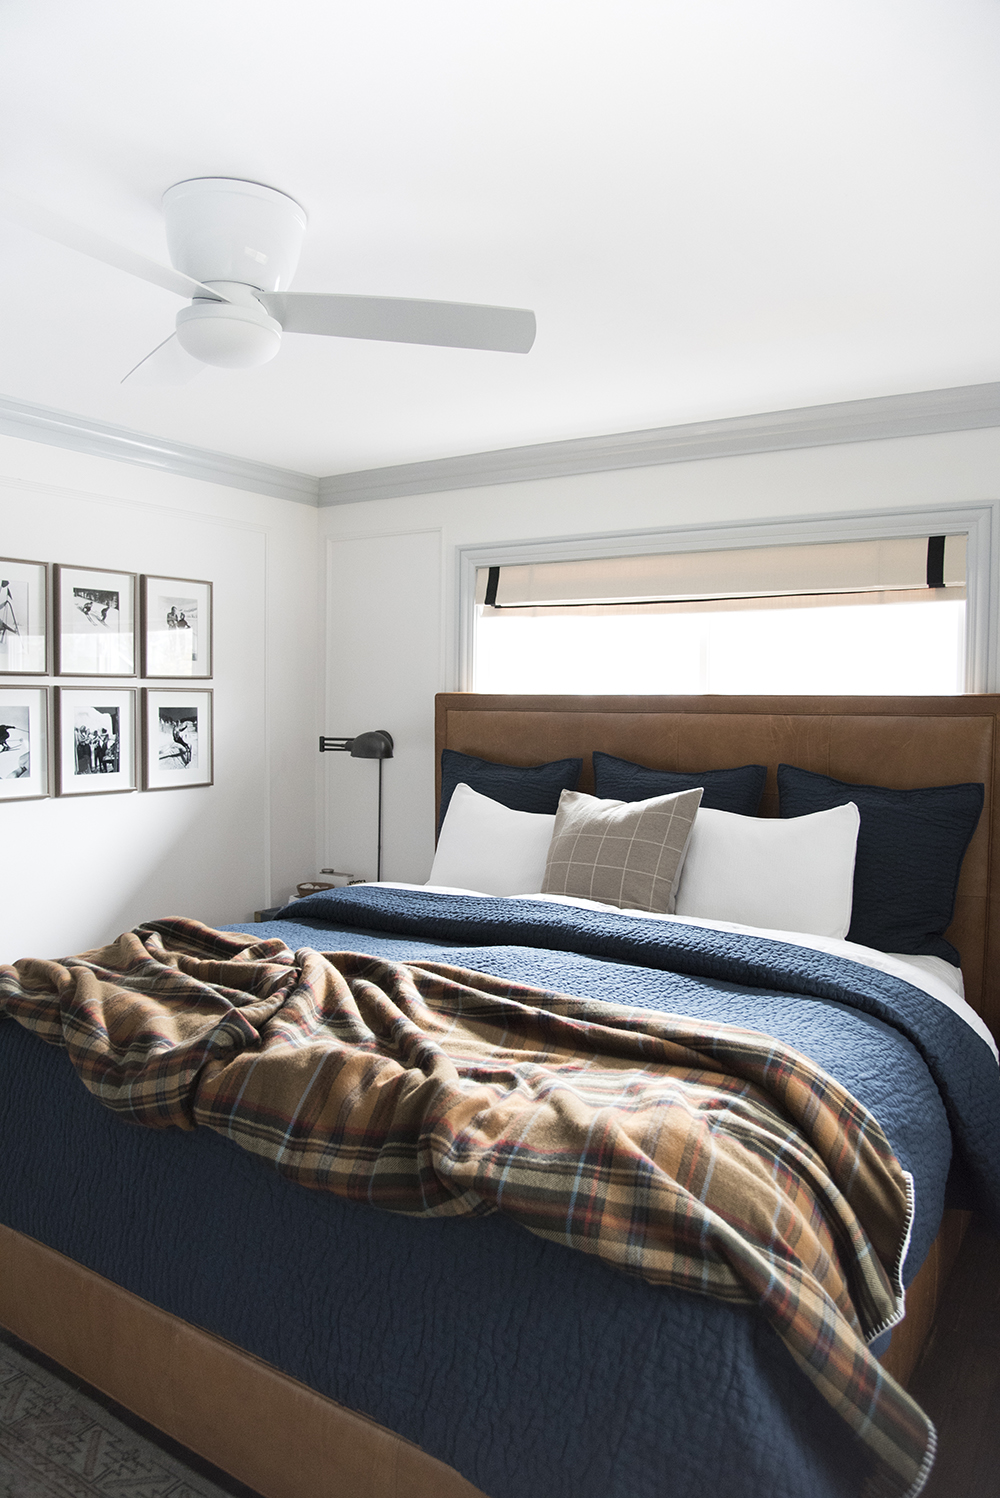 cozy master bedroom for fall and winter with plaid bedding - roomfortuedsay.com